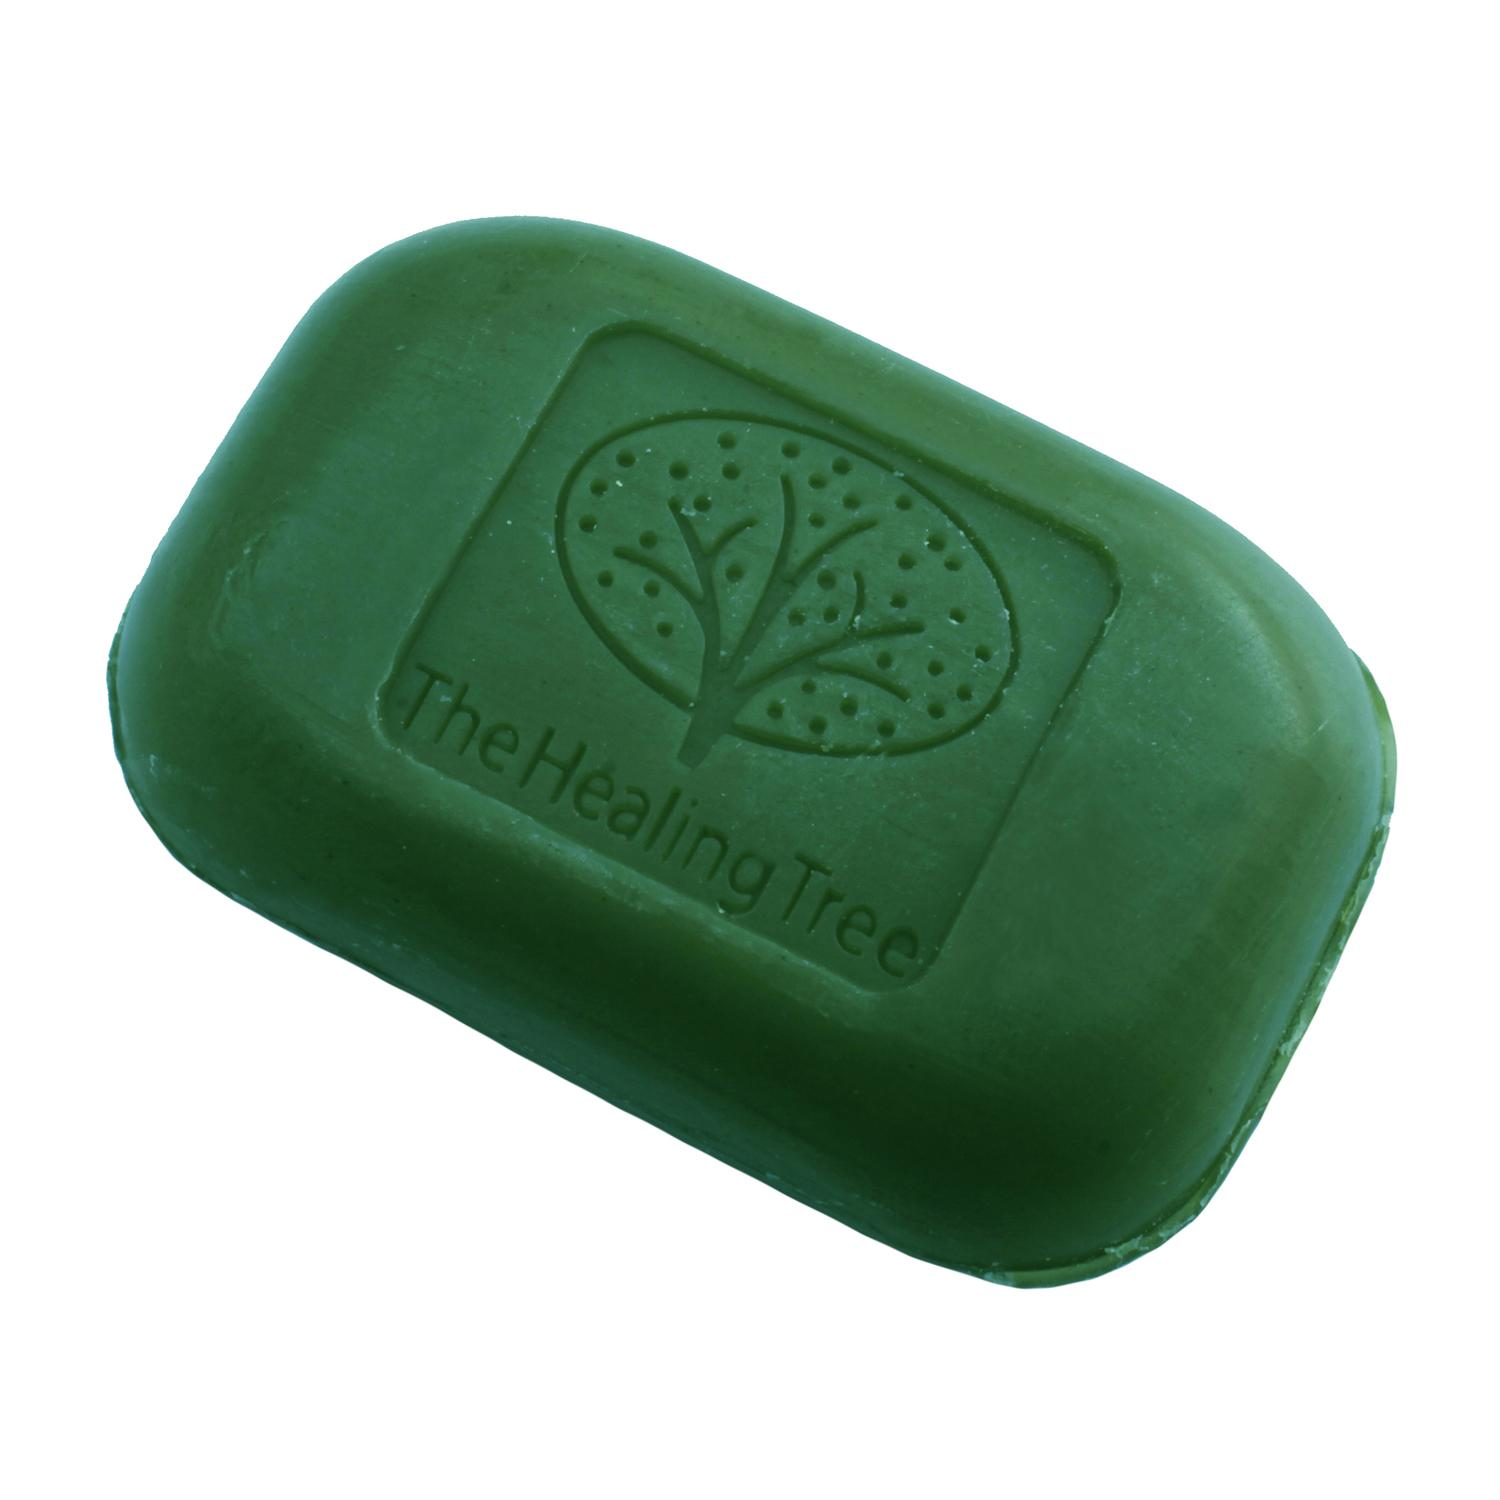 Green Tea Soap - Antioxidant Rich to Help Fight Premature Aging Skin (Single, 3-Pack, 6-Pack)